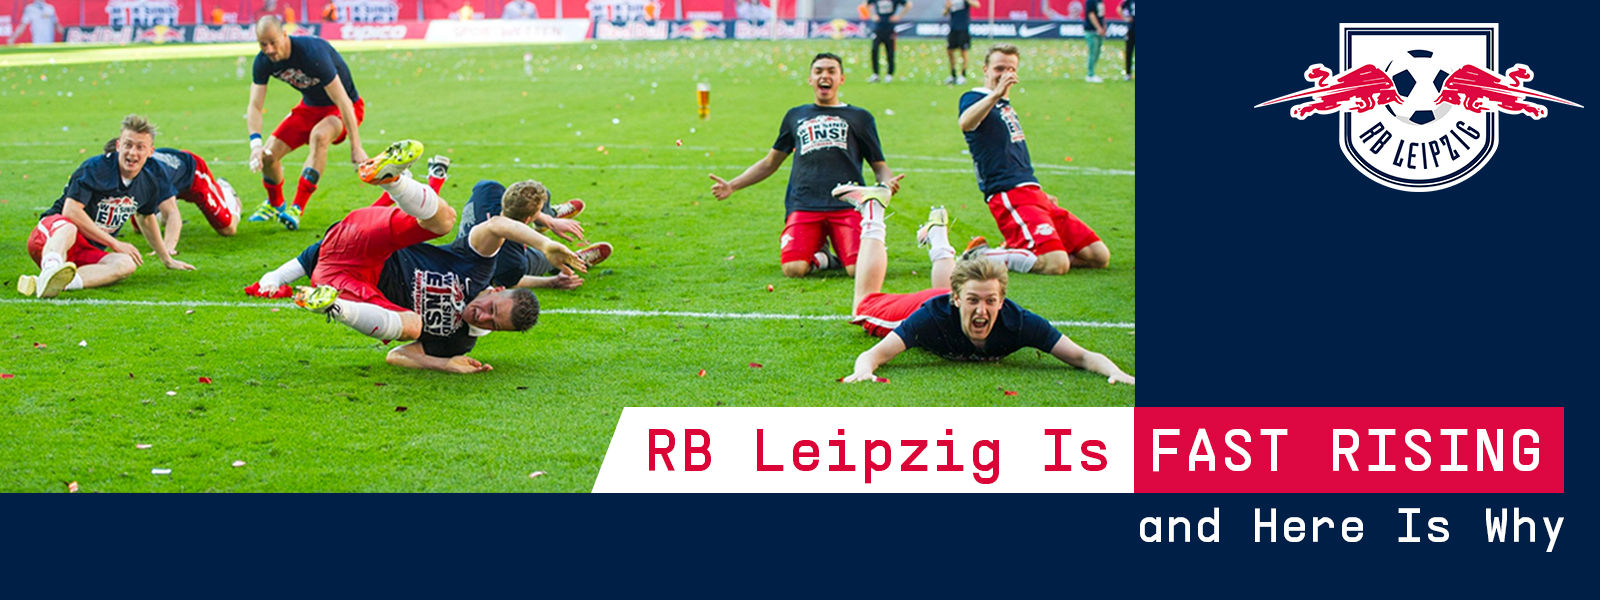 RB Leipzig Is Fast Rising and Here Is Why